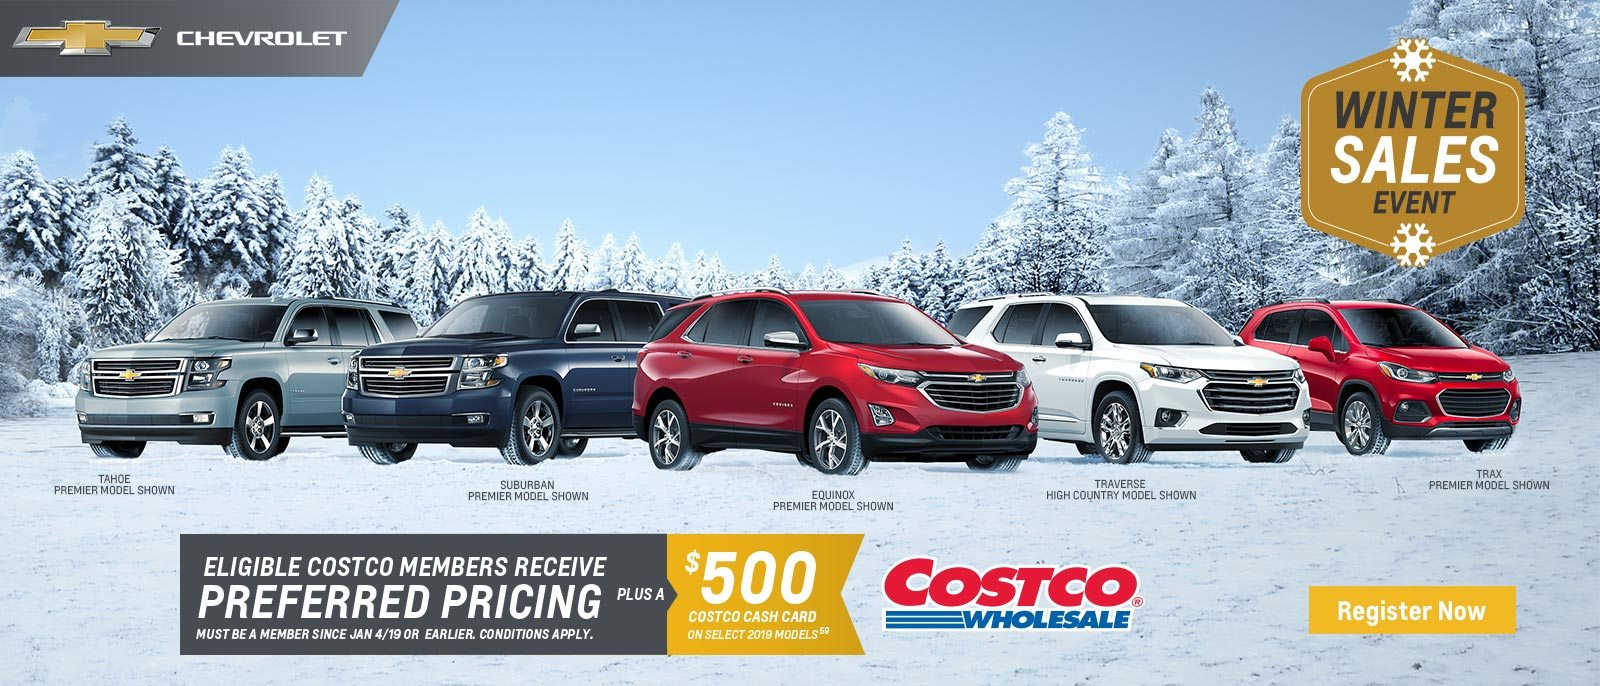 2019_CNT_Chevy_Costco_Multi_JAN_EN_CDK_1600x686_v3 (1)